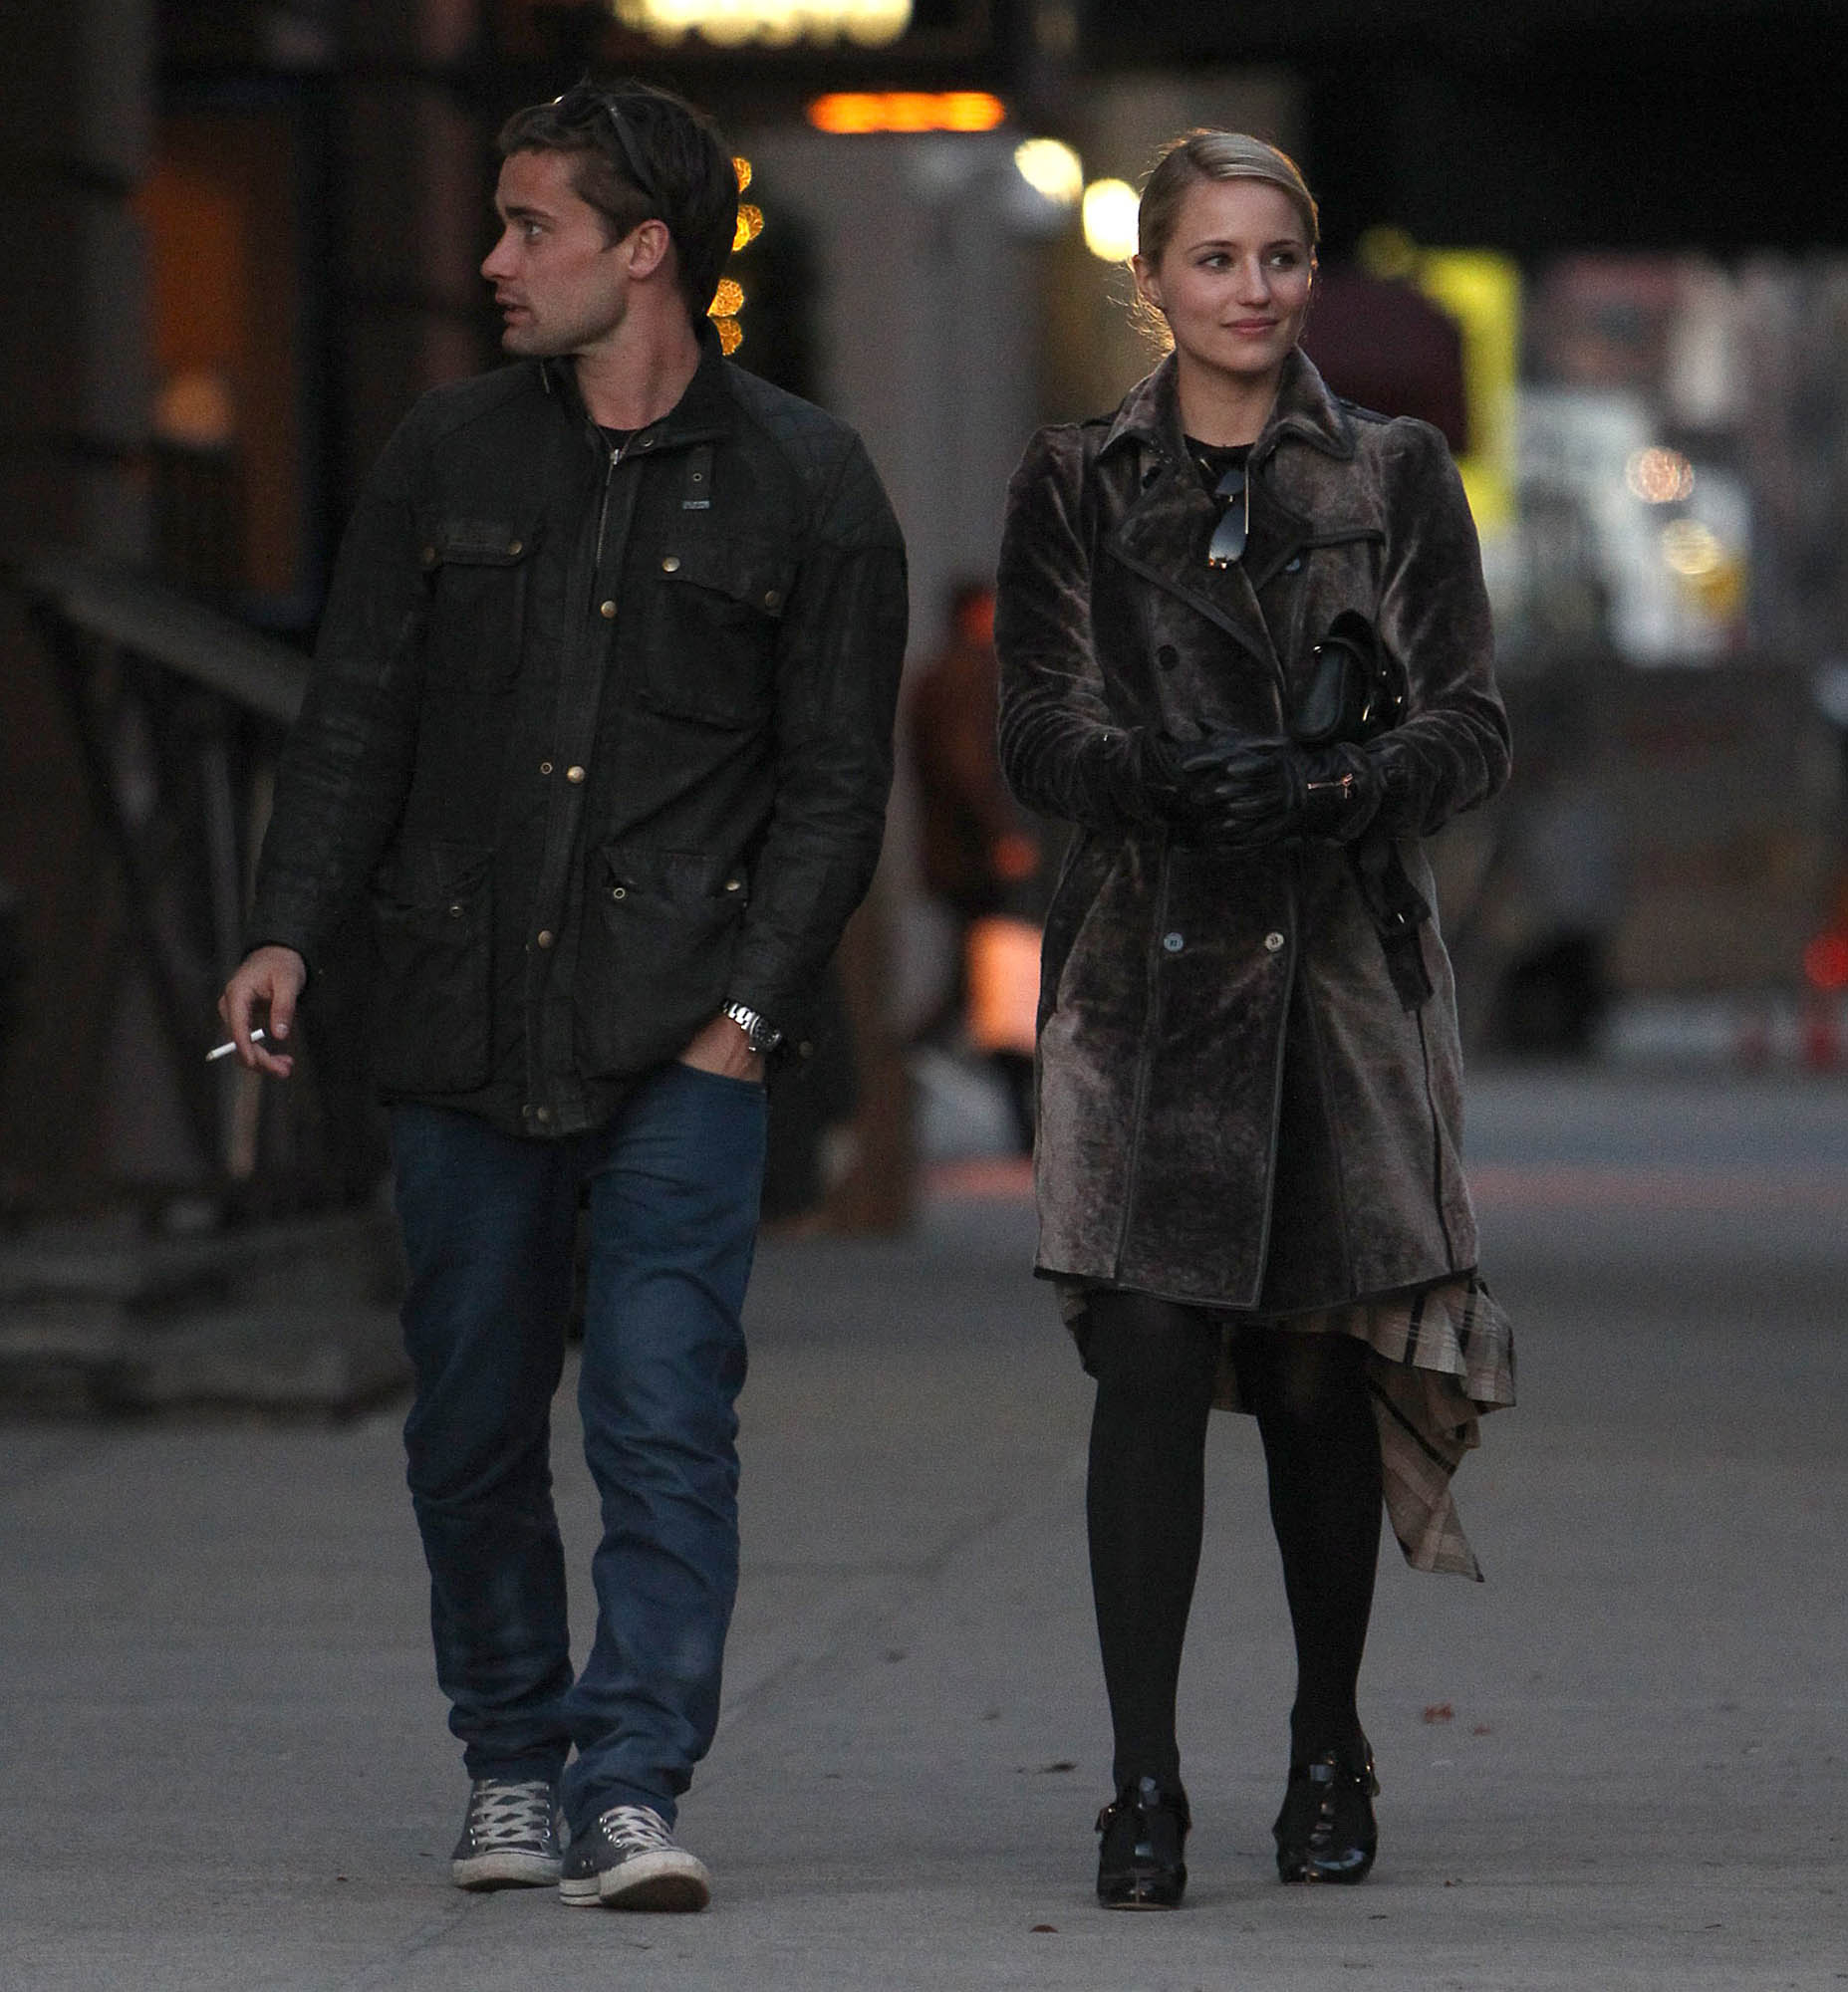 Dianna Agron & Christian Cooke Holding Hands In NYC ...